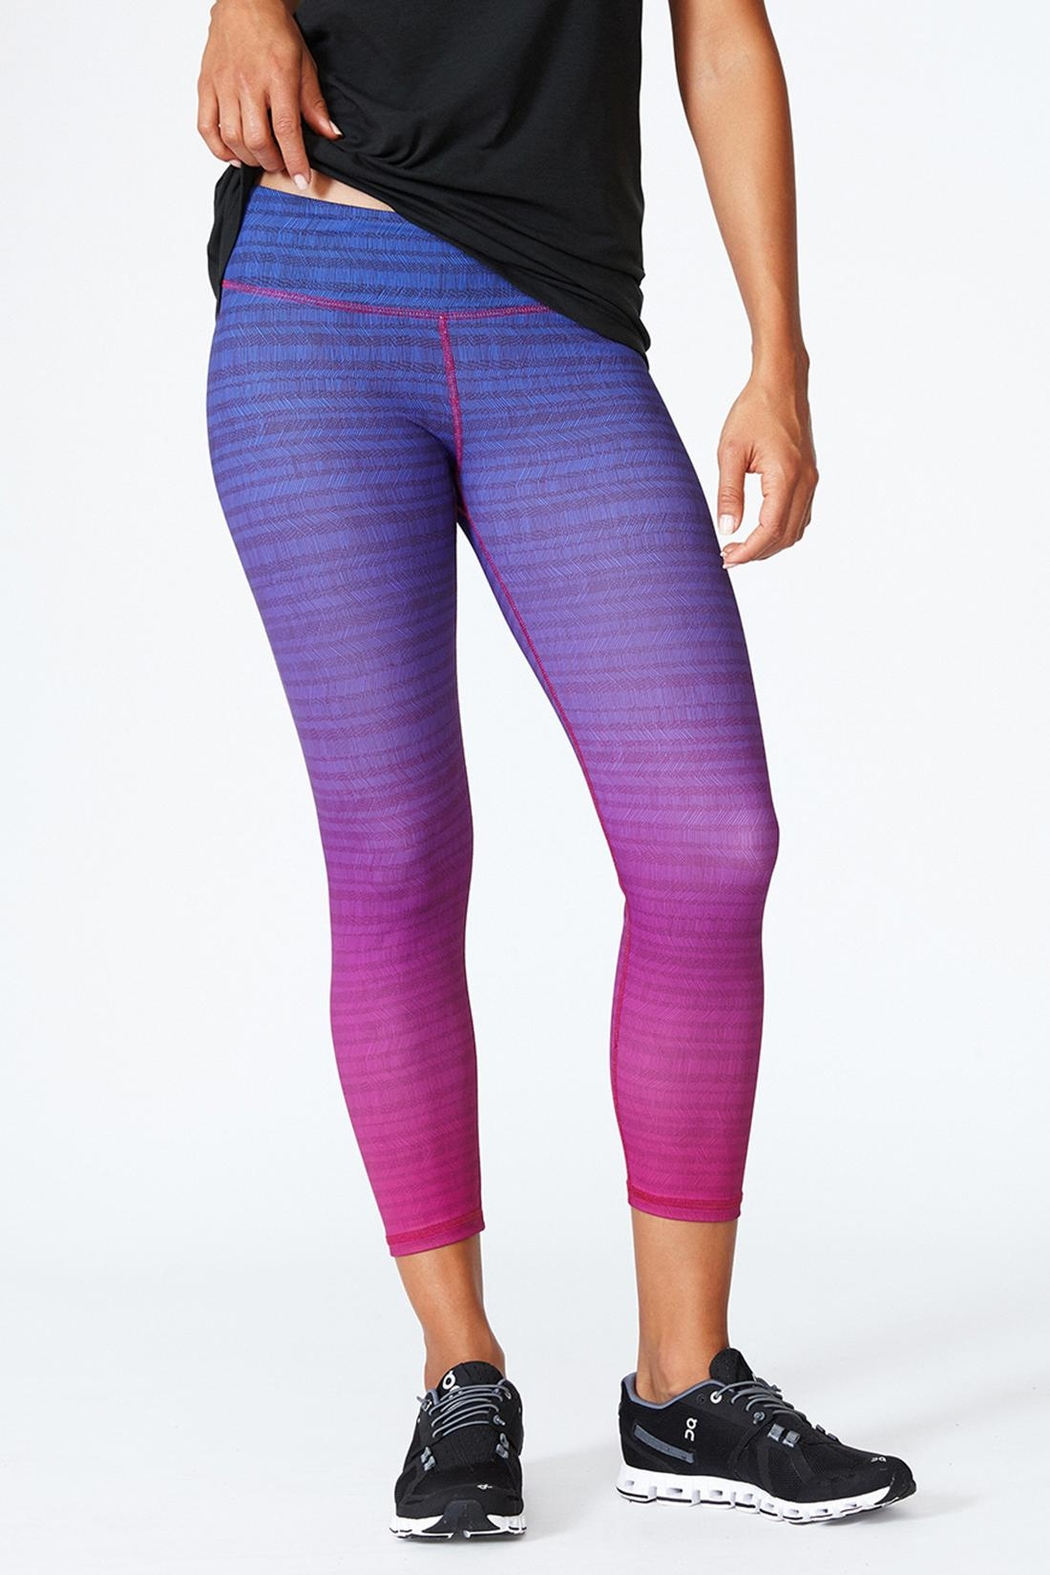 Solfire Marianne Tight Leggings - Front Cropped Image